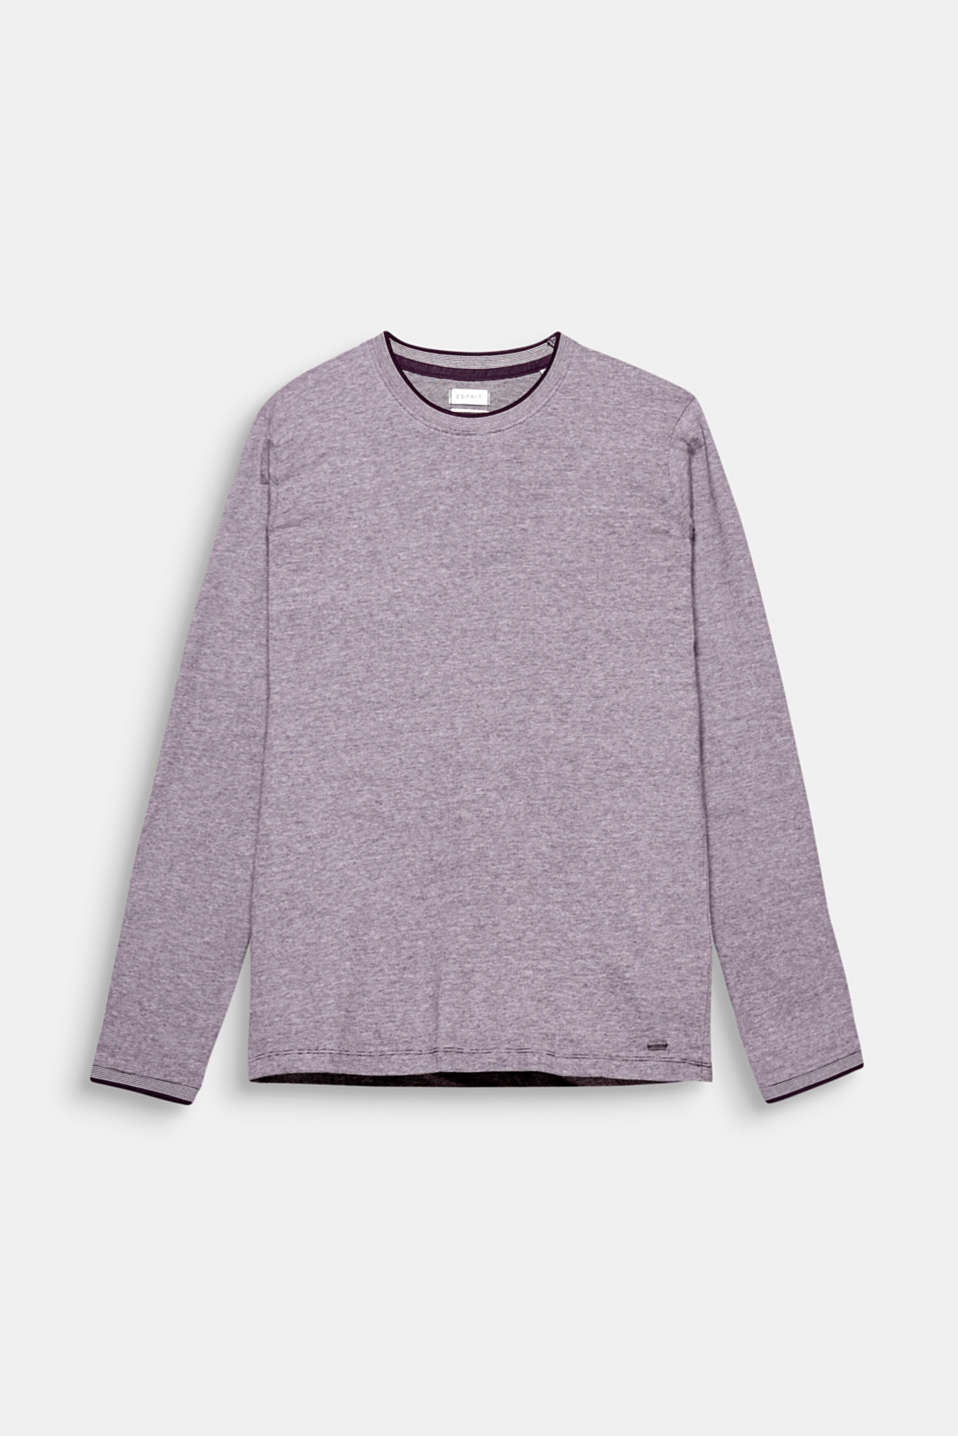 The narrow ribbed borders give this long sleeve jersey top a sporty, yet smart look.